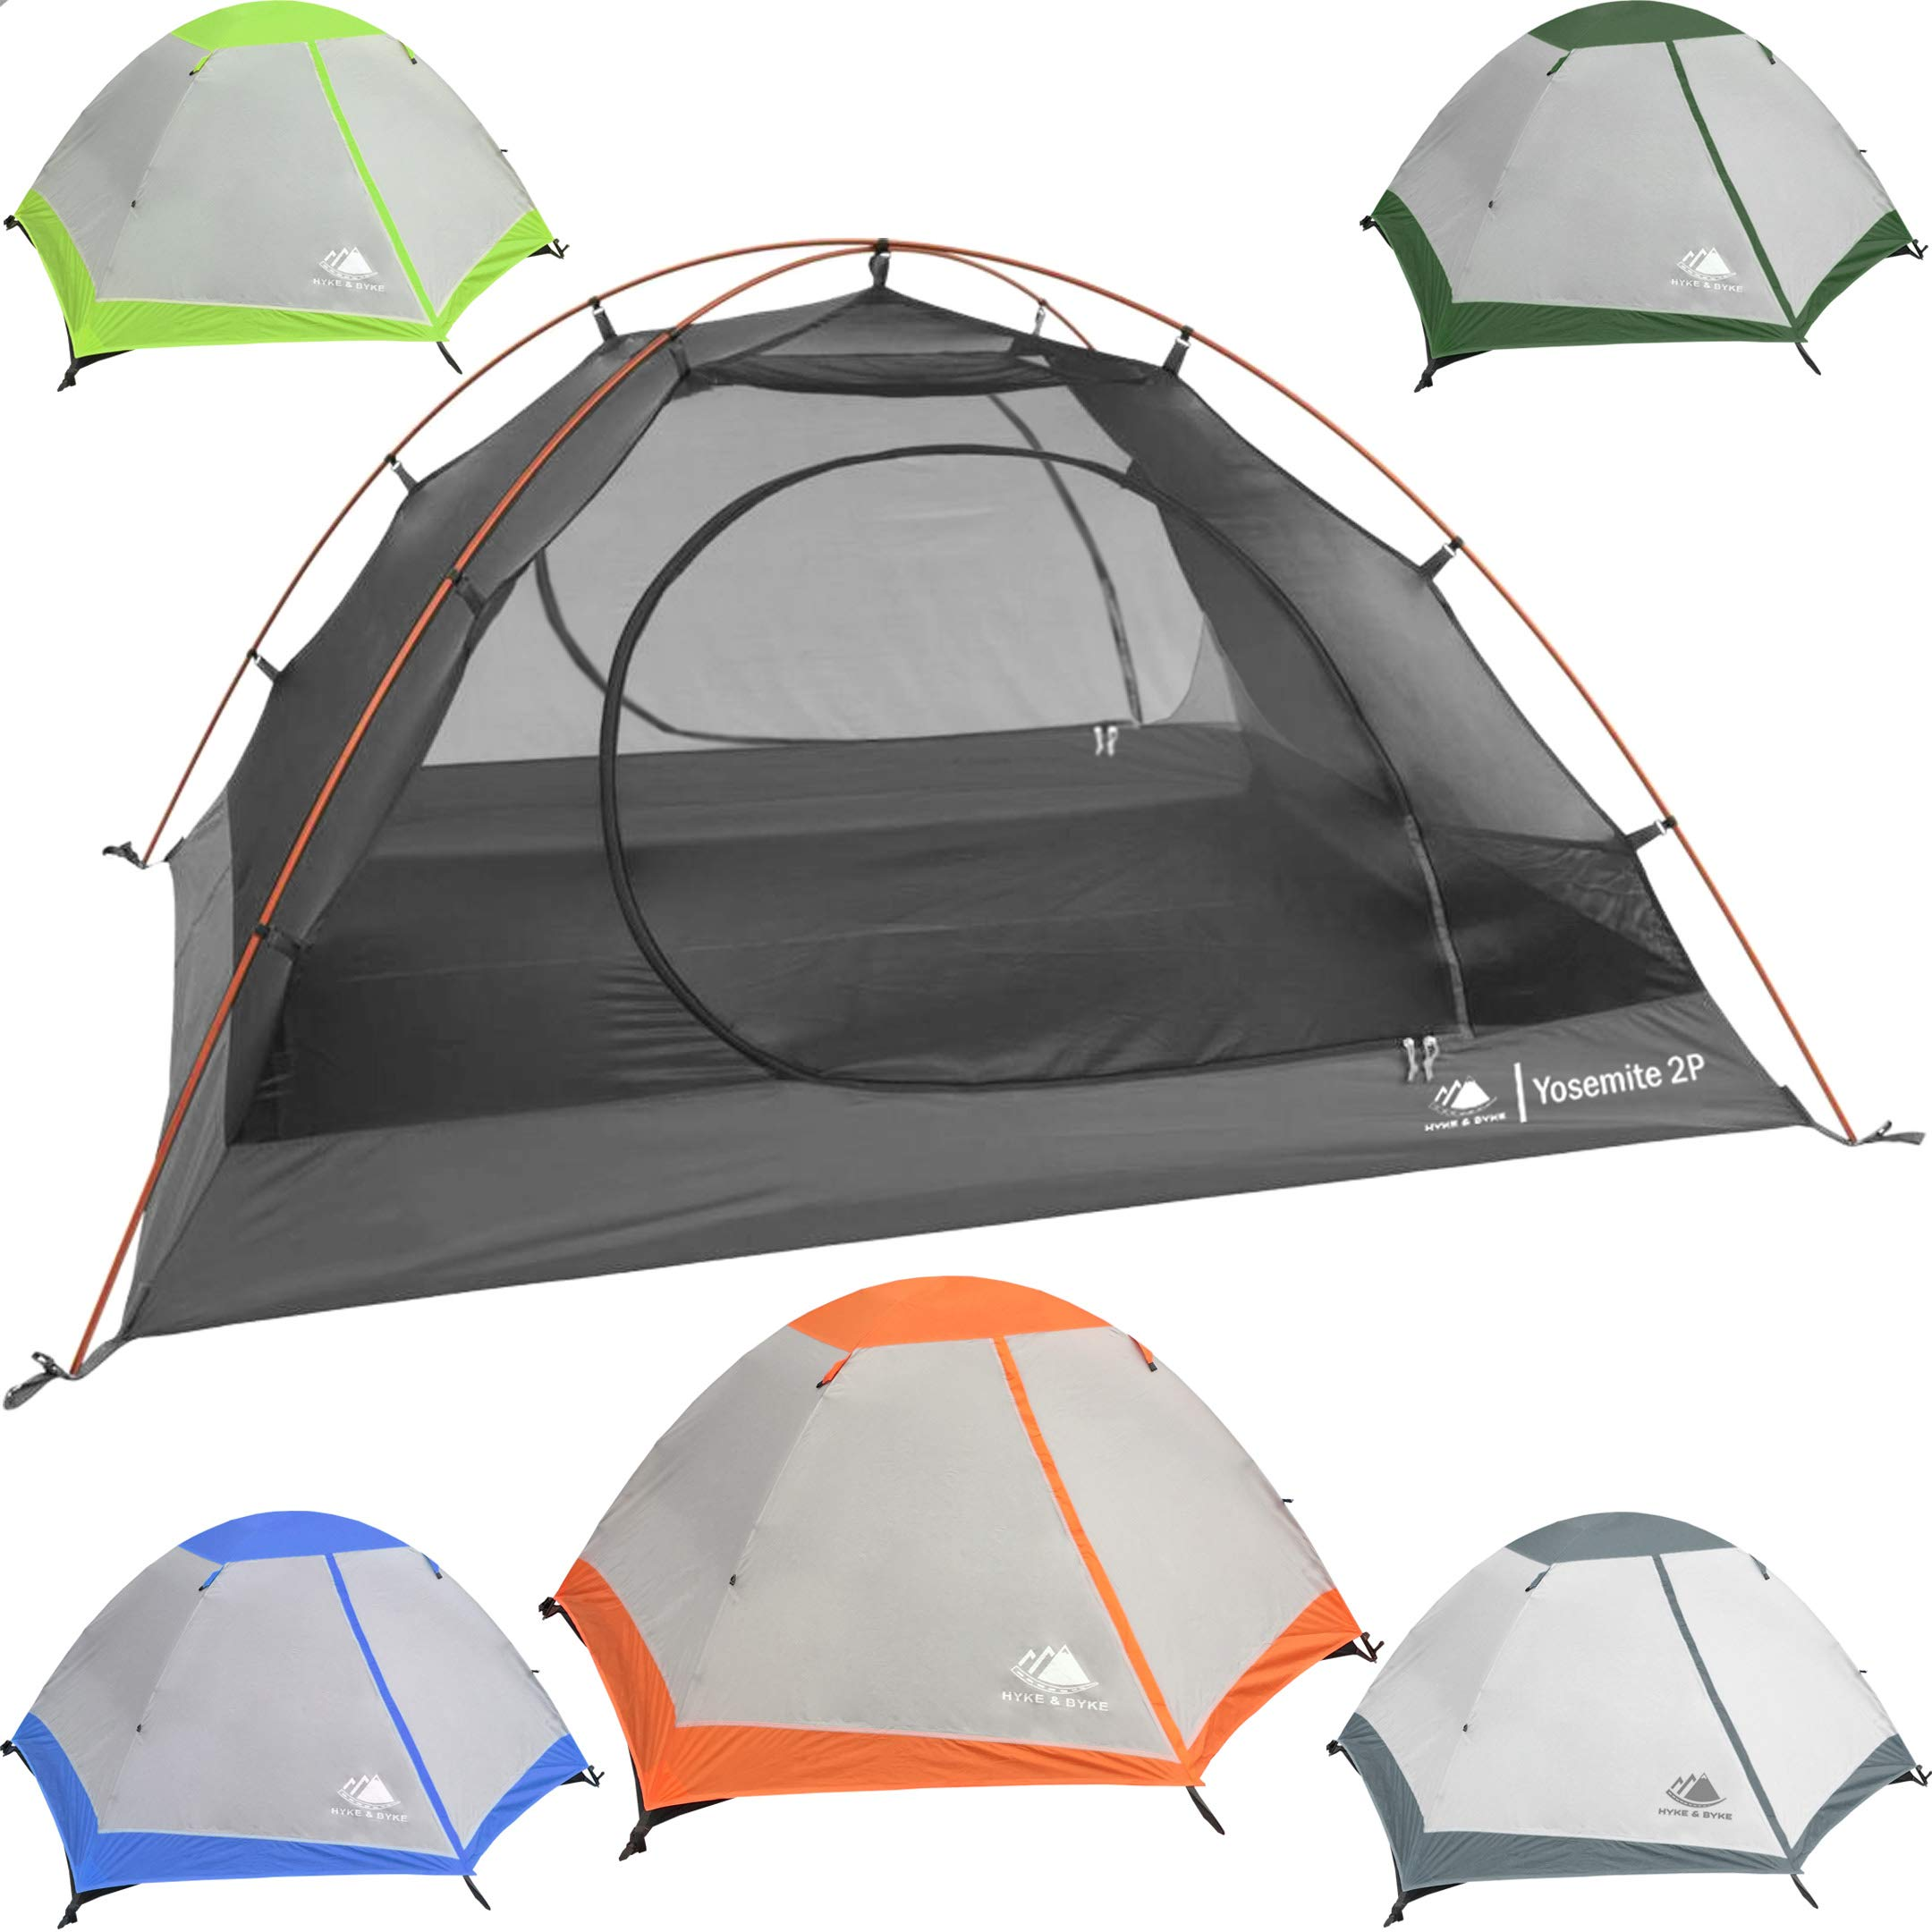 Hyke & Byke 2 Person Backpacking Tent with Footprint - Lightweight Yosemite Two Man 3 Season Ultralight, Waterproof, Ultra Compact 2p Freestanding Backpack Tents for Camping and Hiking (Orange) by Hyke & Byke